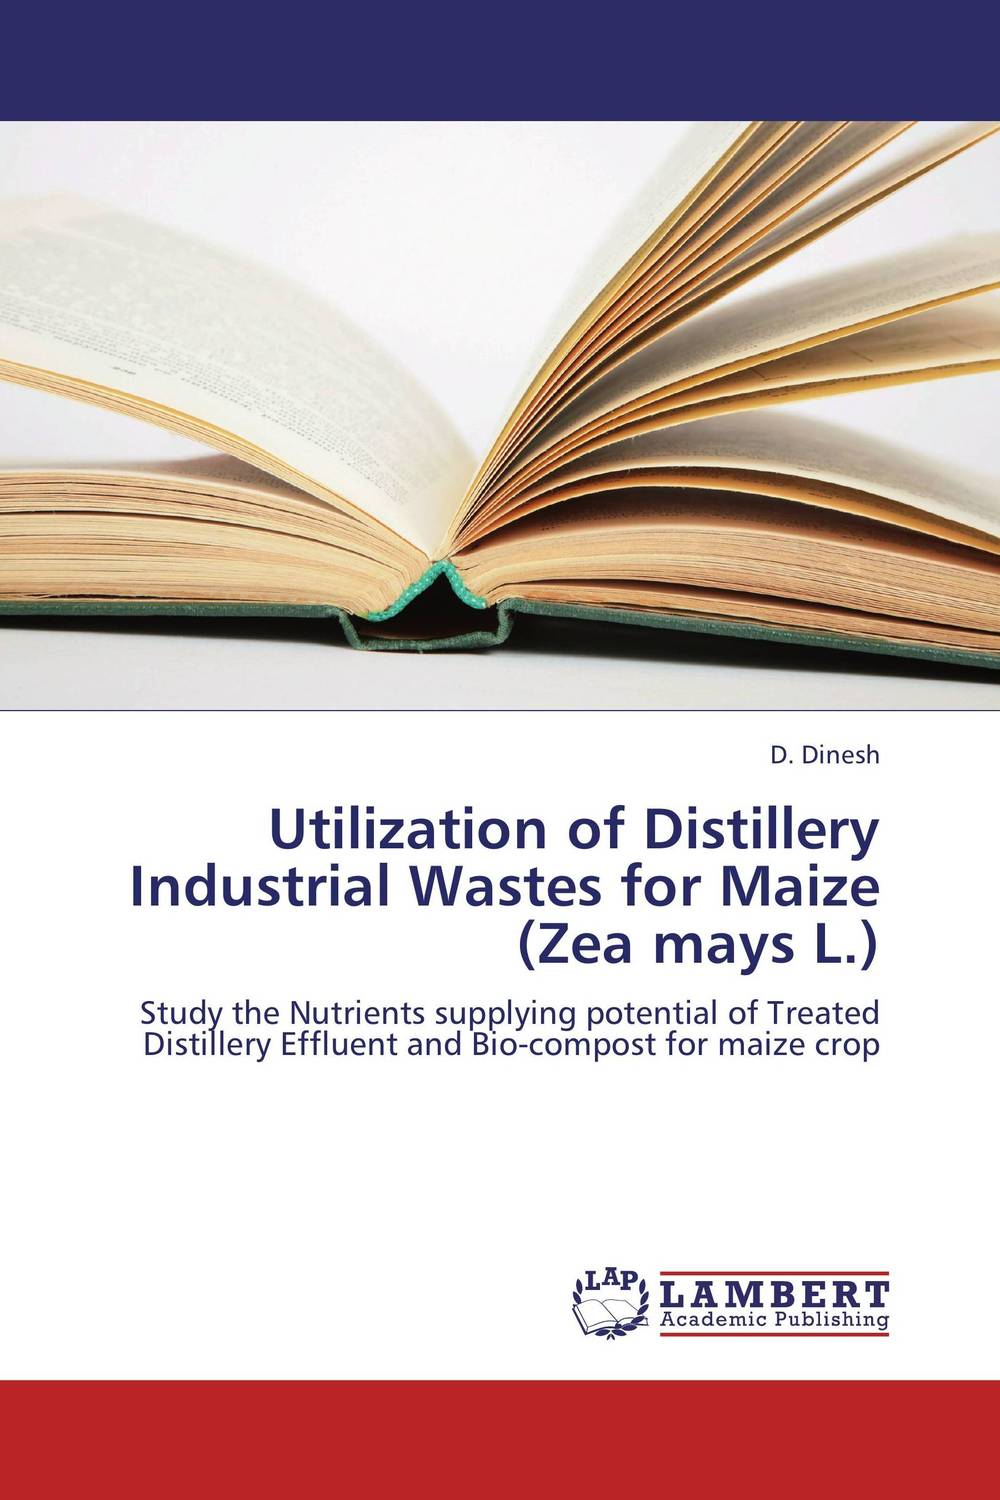 Utilization of Distillery Industrial Wastes for Maize (Zea mays L.) utilization of palm oil mill wastes